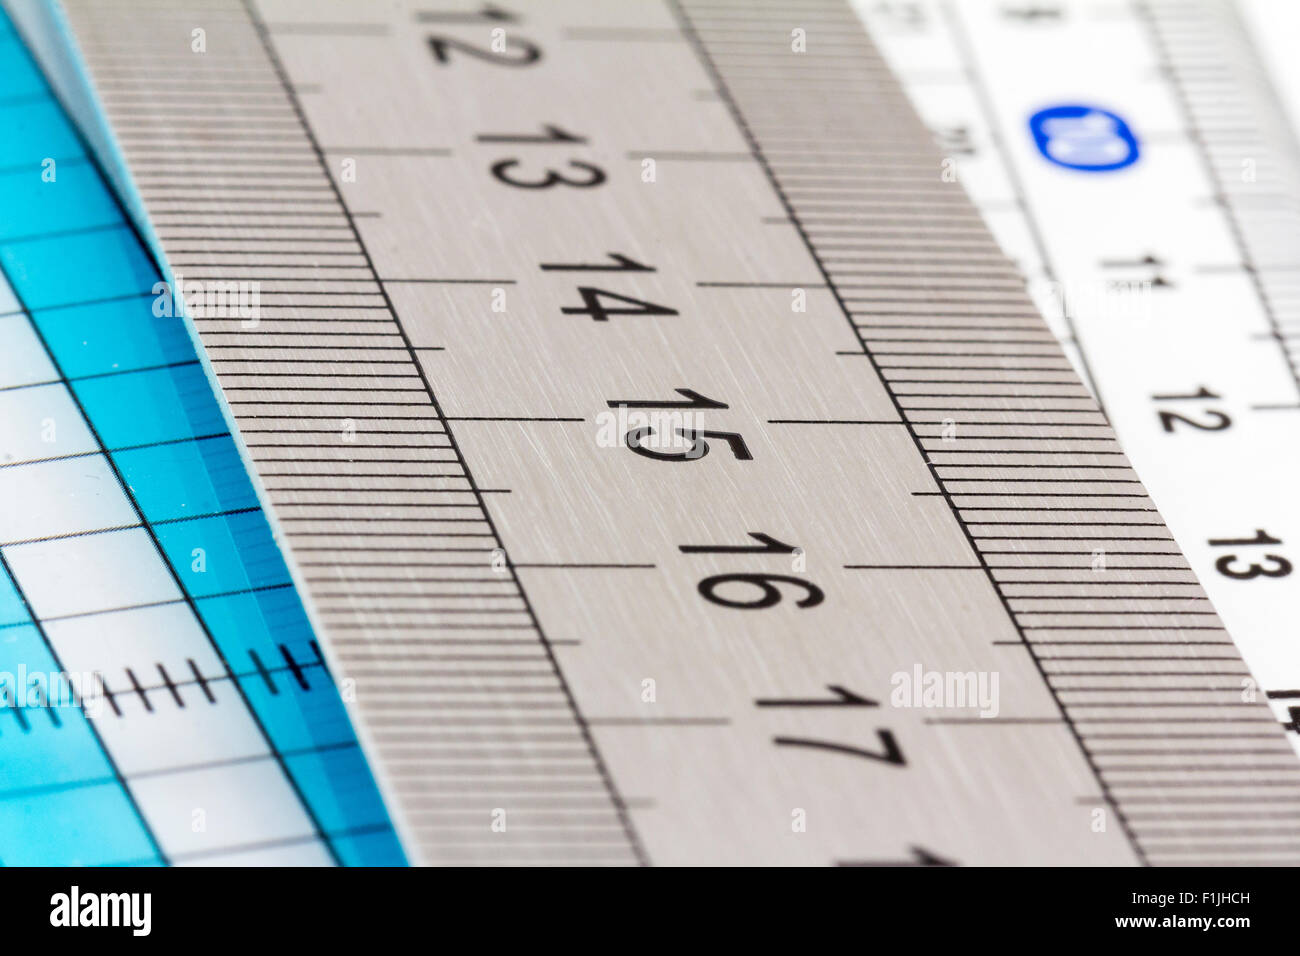 Rulers. Steel ruler, view from along, showing 13-17 cm range, resting on other plastic rulers - Stock Image